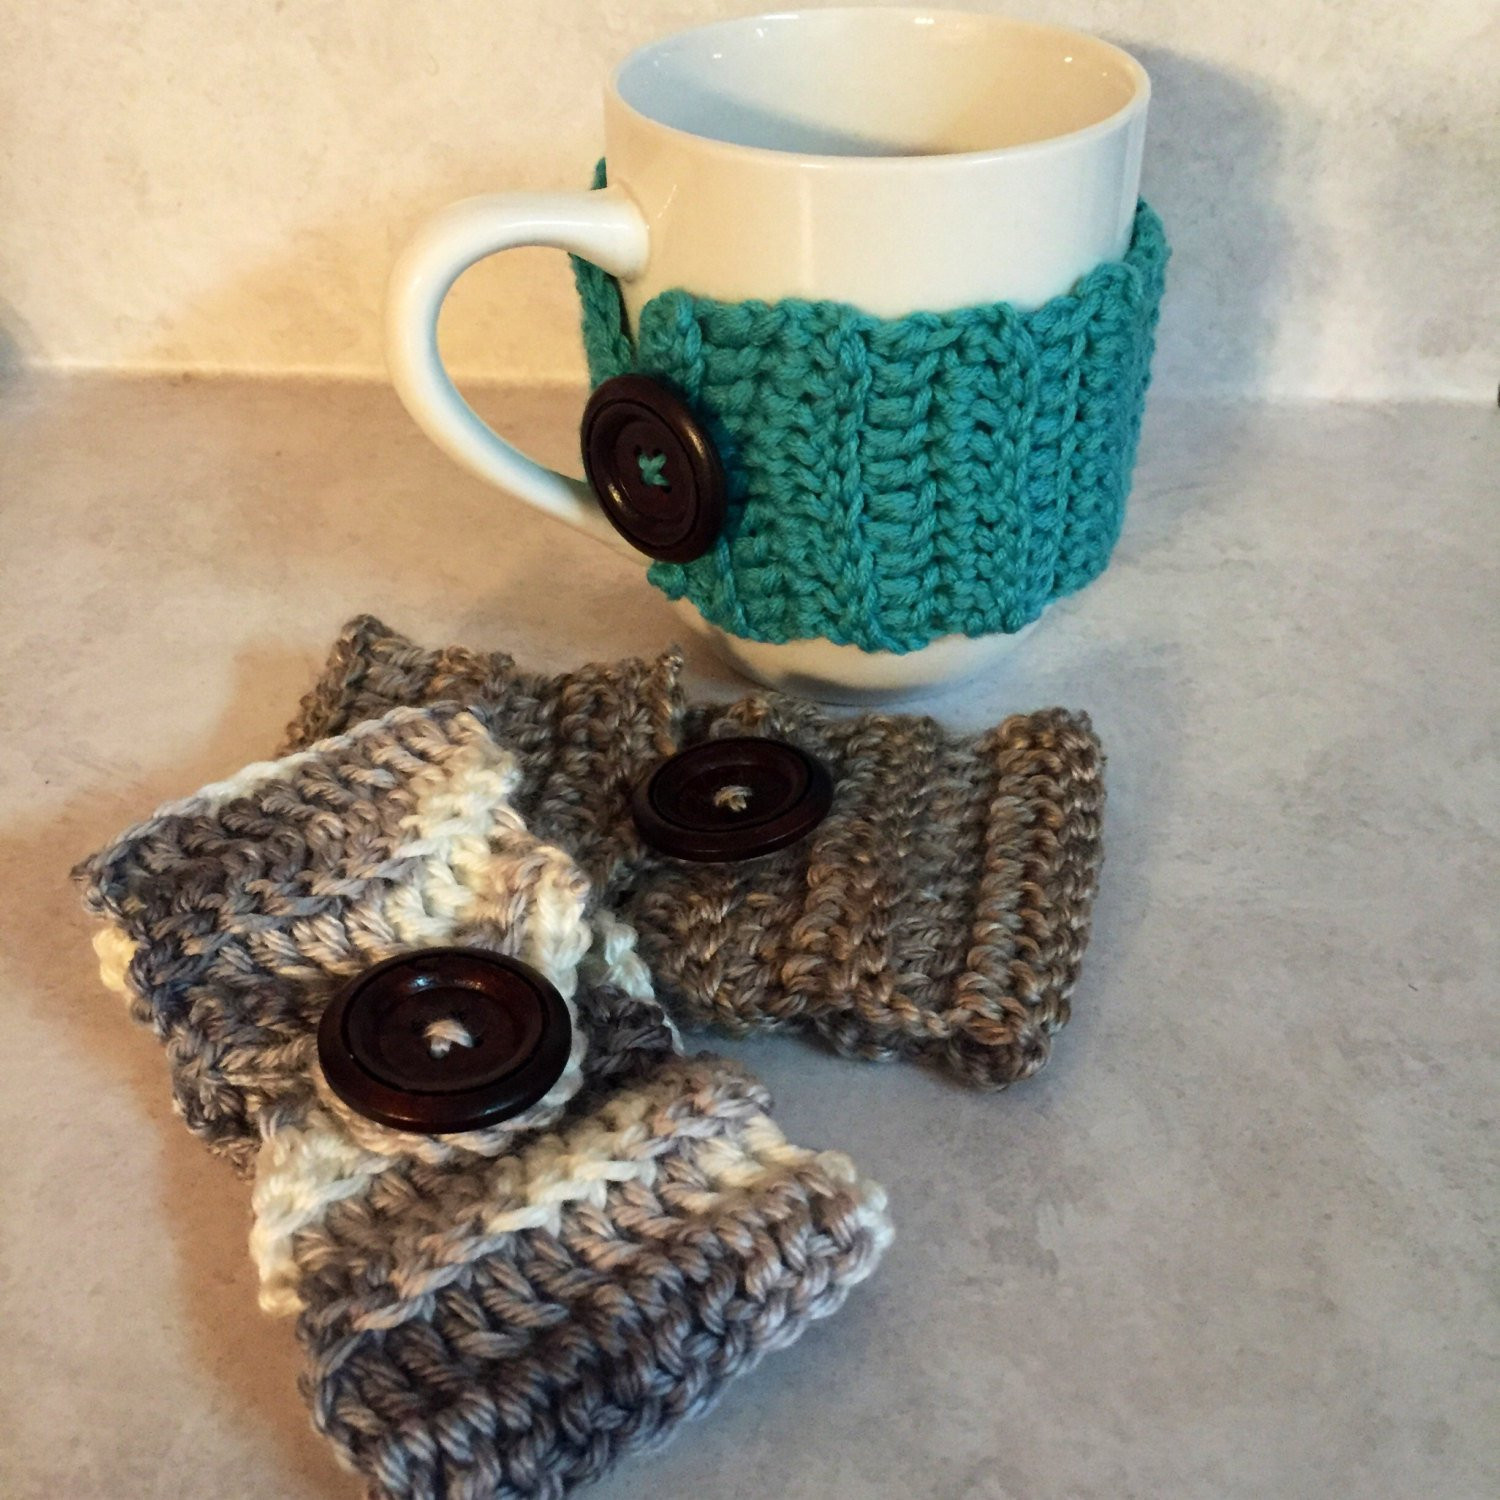 Crochet Coffee Cup Cozy New Crochet Tea Cozy Coffee Cup Sleeve Coffee Sleeve Mug Cozy Of Crochet Coffee Cup Cozy Fresh 20 Cool Crochet Coffee Cozy Ideas & Tutorials Hative